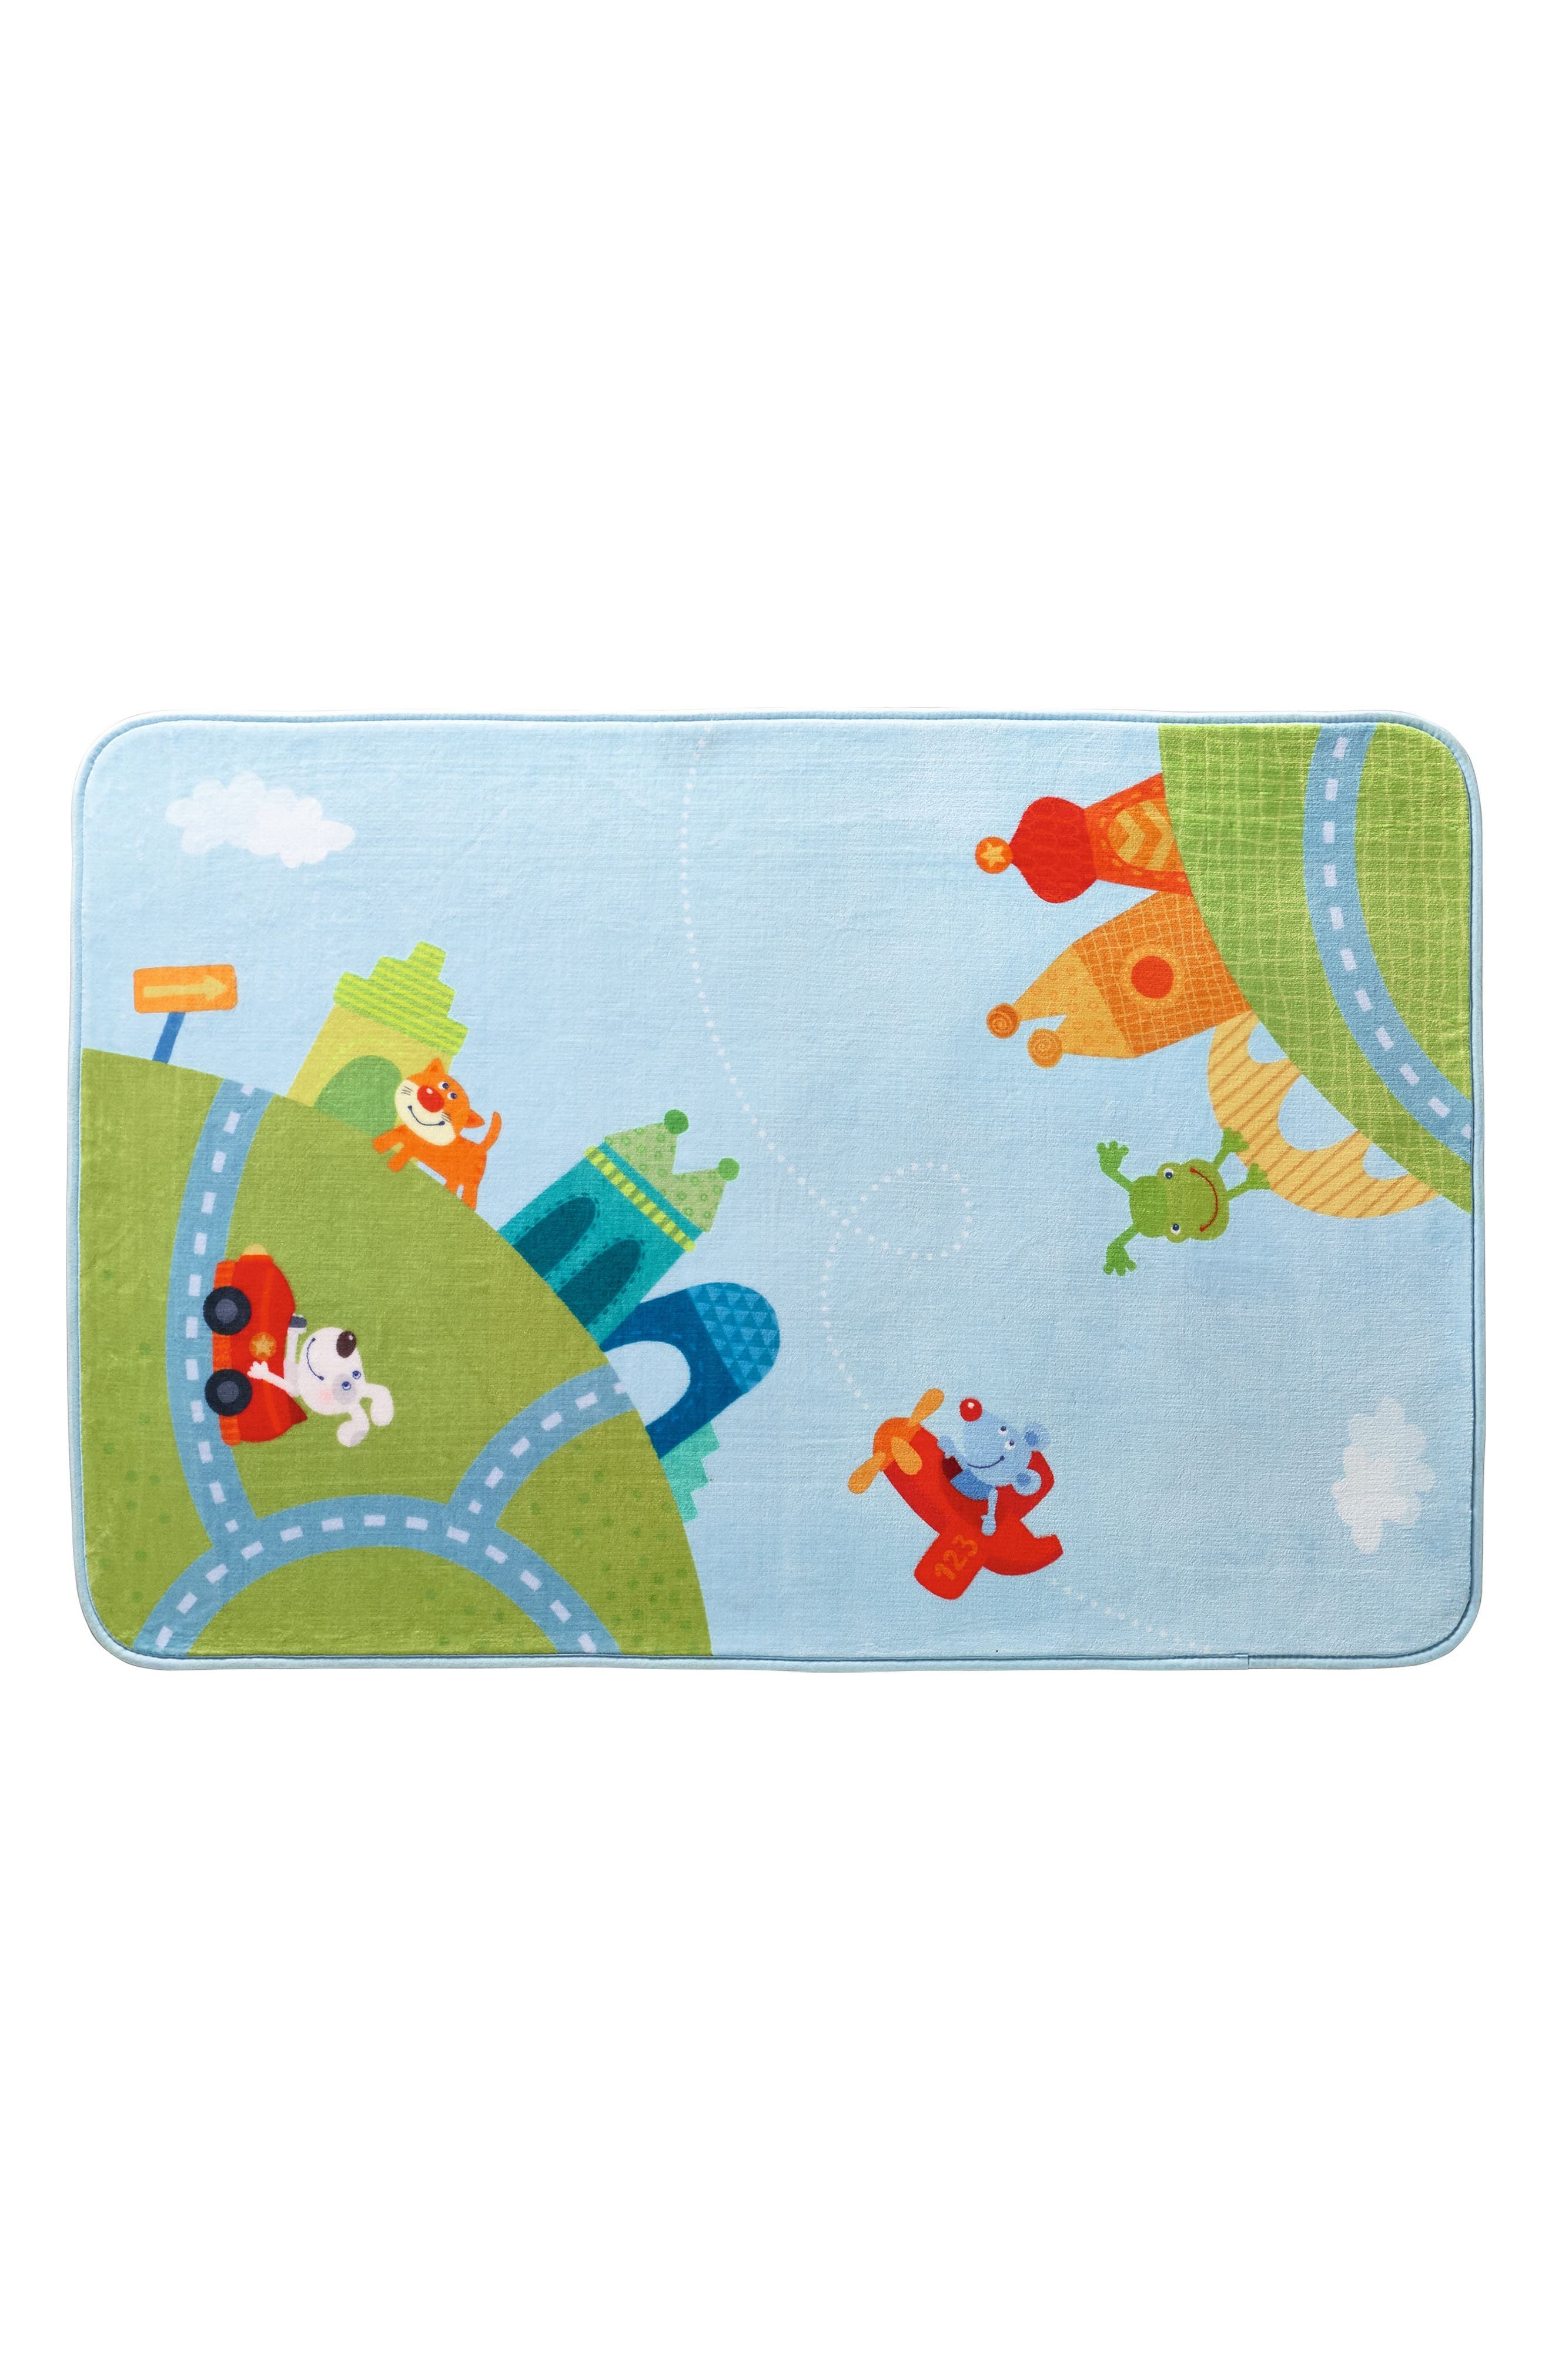 City Tour Play Mat,                         Main,                         color,